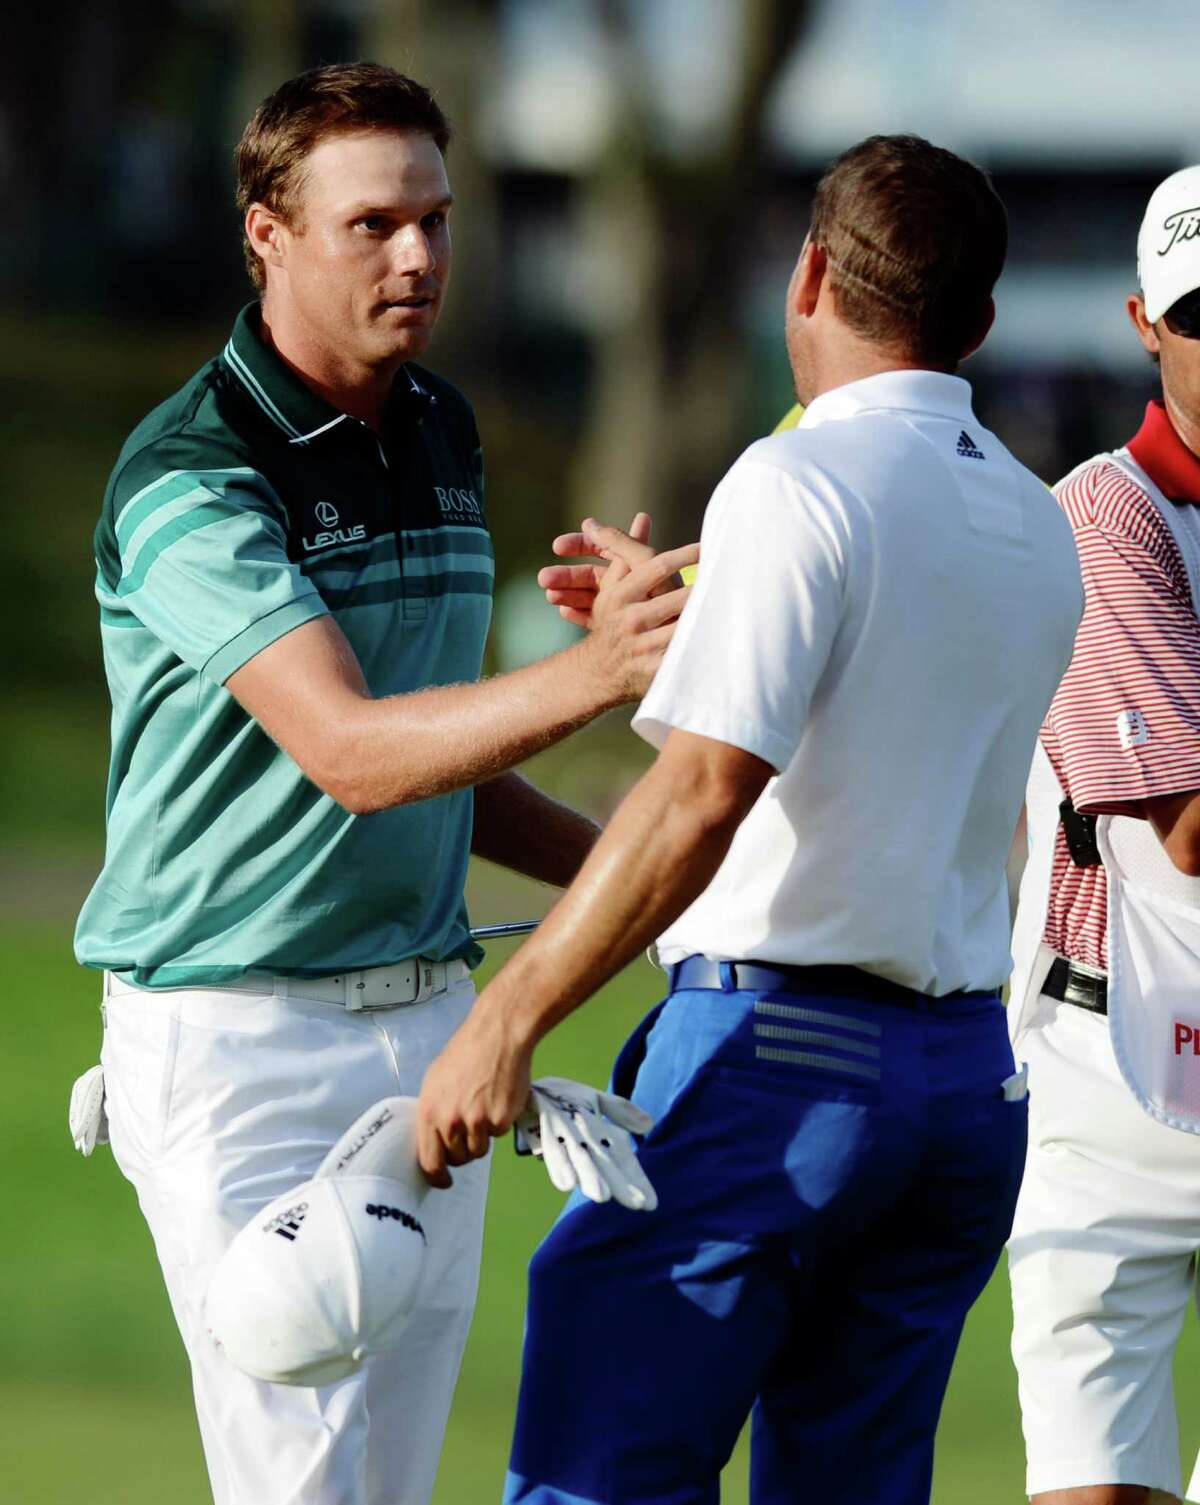 Nick Watney, left, shakes hands with his playing partner, Sergio Garcia, of Spain, after sinking a birdie putt on the 18th hole of the fourth round to win The Barclays golf tournament at Bethpage State Park in Farmingdale, N.Y., Sunday, Aug. 26, 2012. (AP Photo/Henny Ray Abrams)